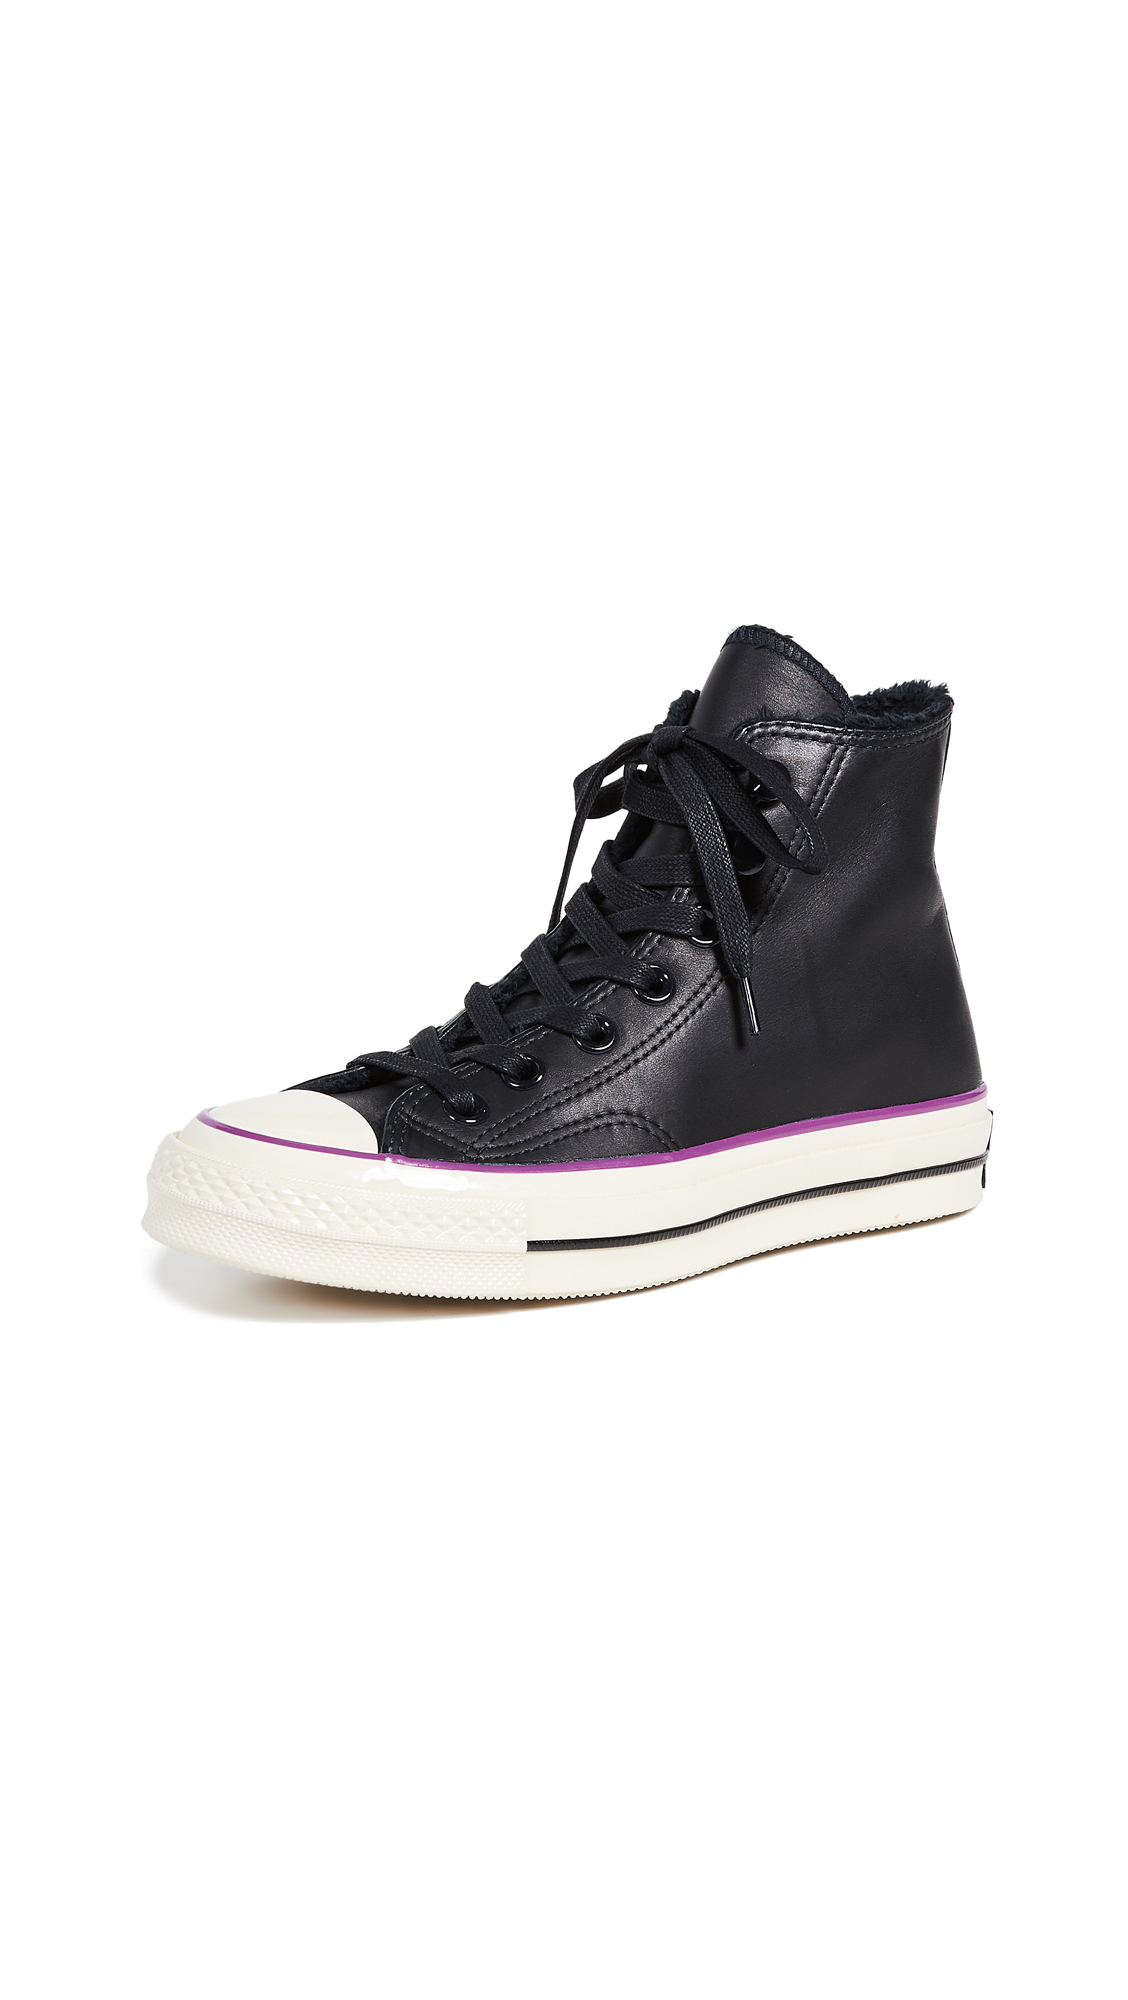 Converse Chuck 70 High Top Sneakers - Black